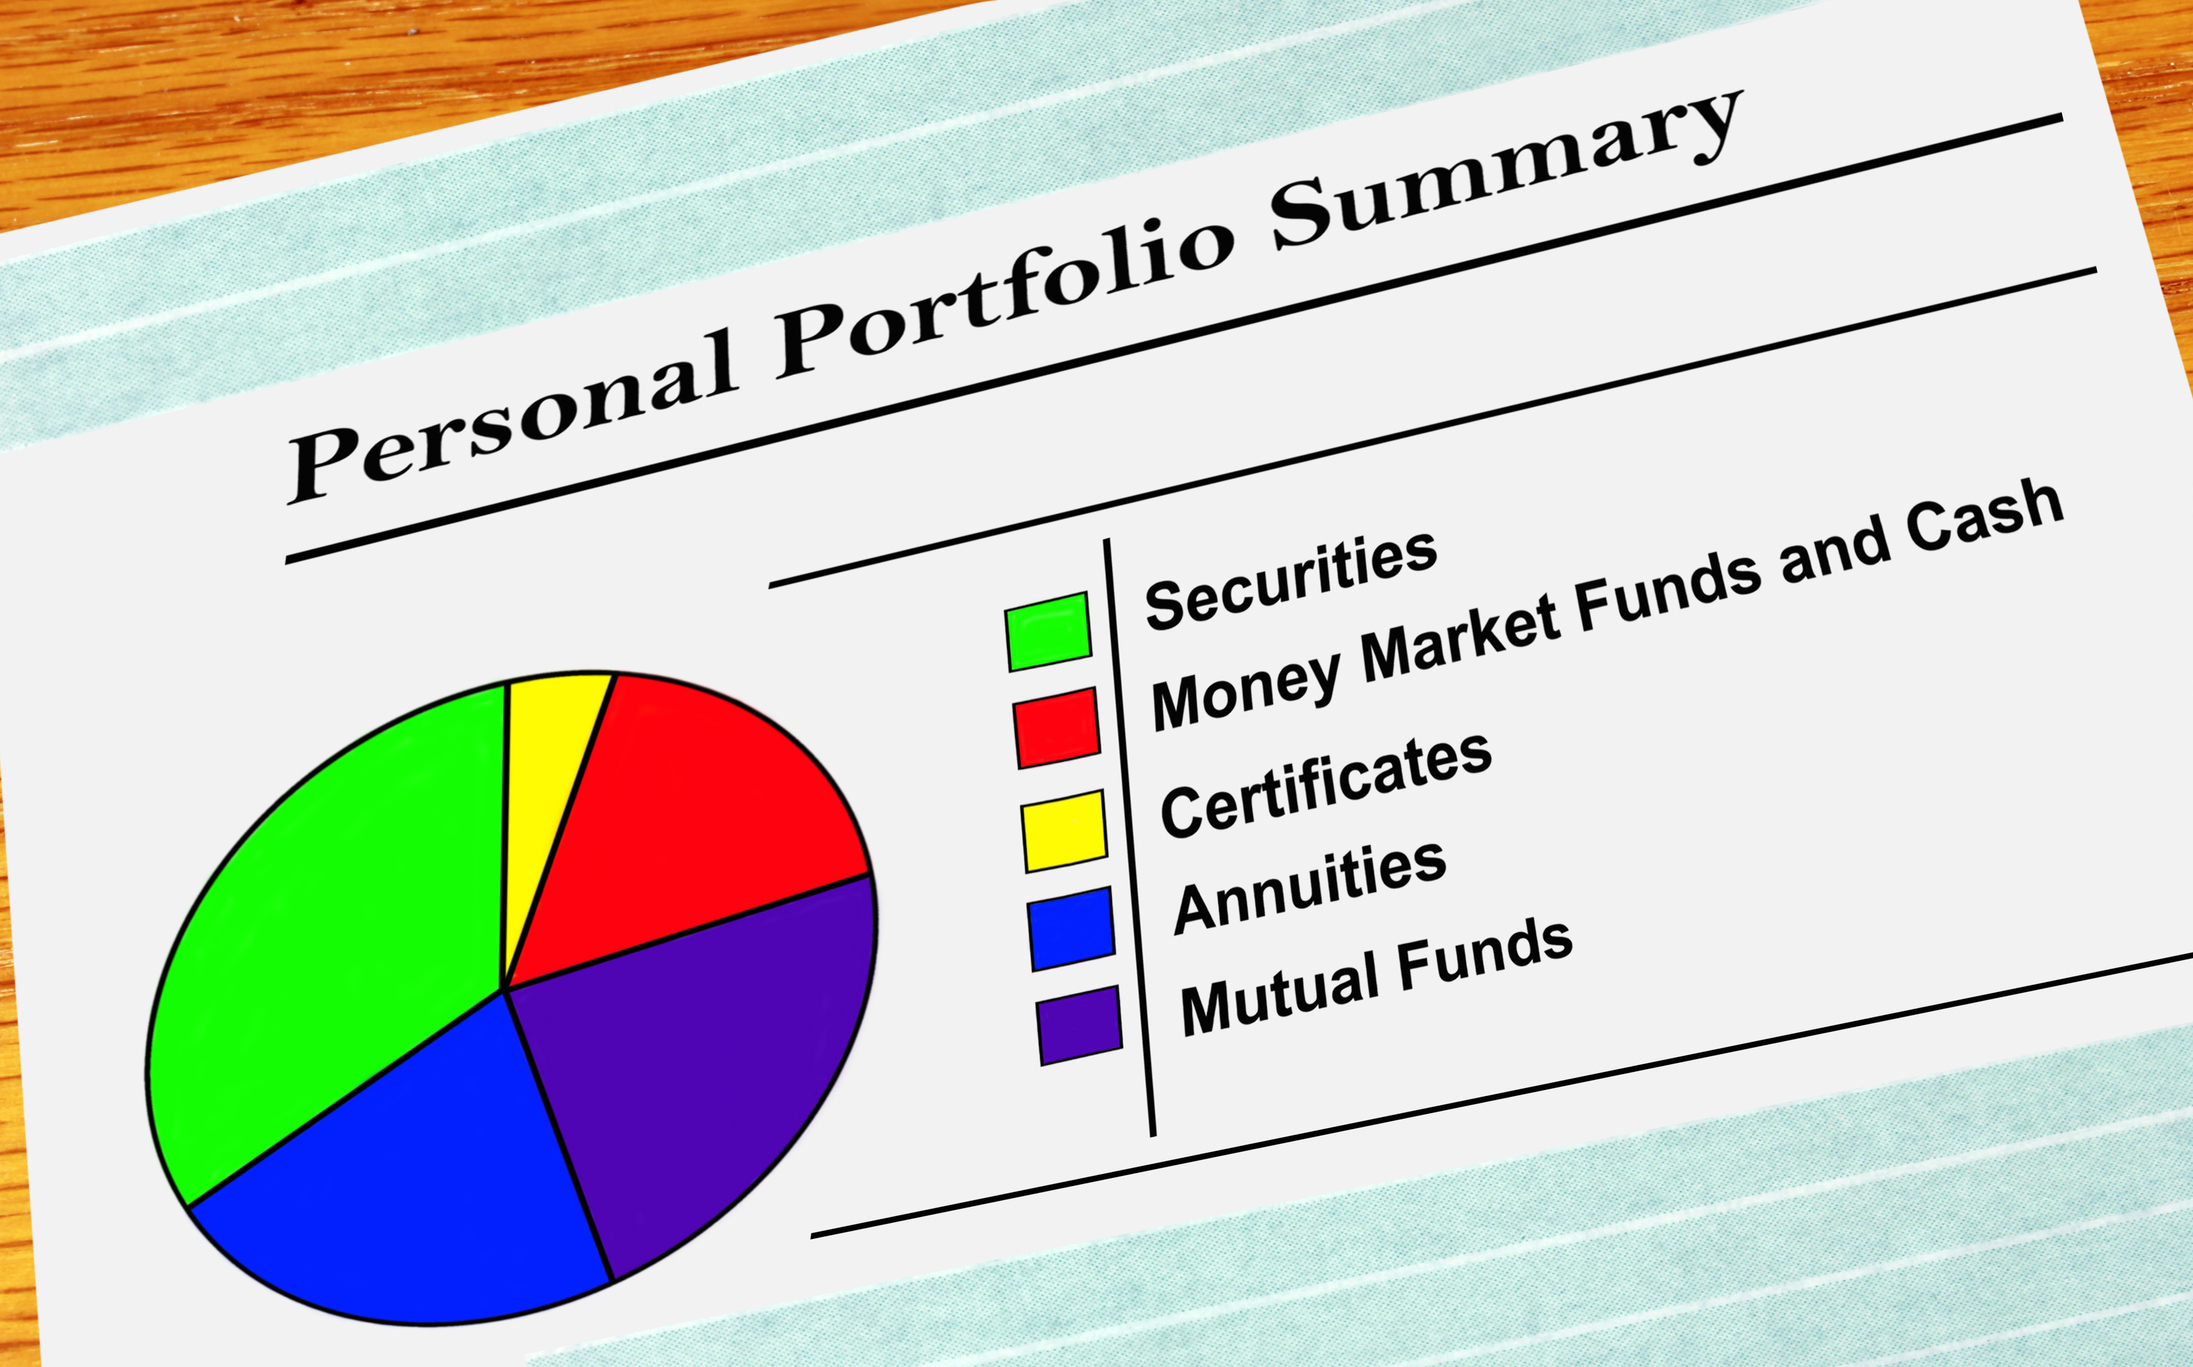 Personal portfolio summary; pie chart is on the left, and on the right are descriptions for what the chart colors represent